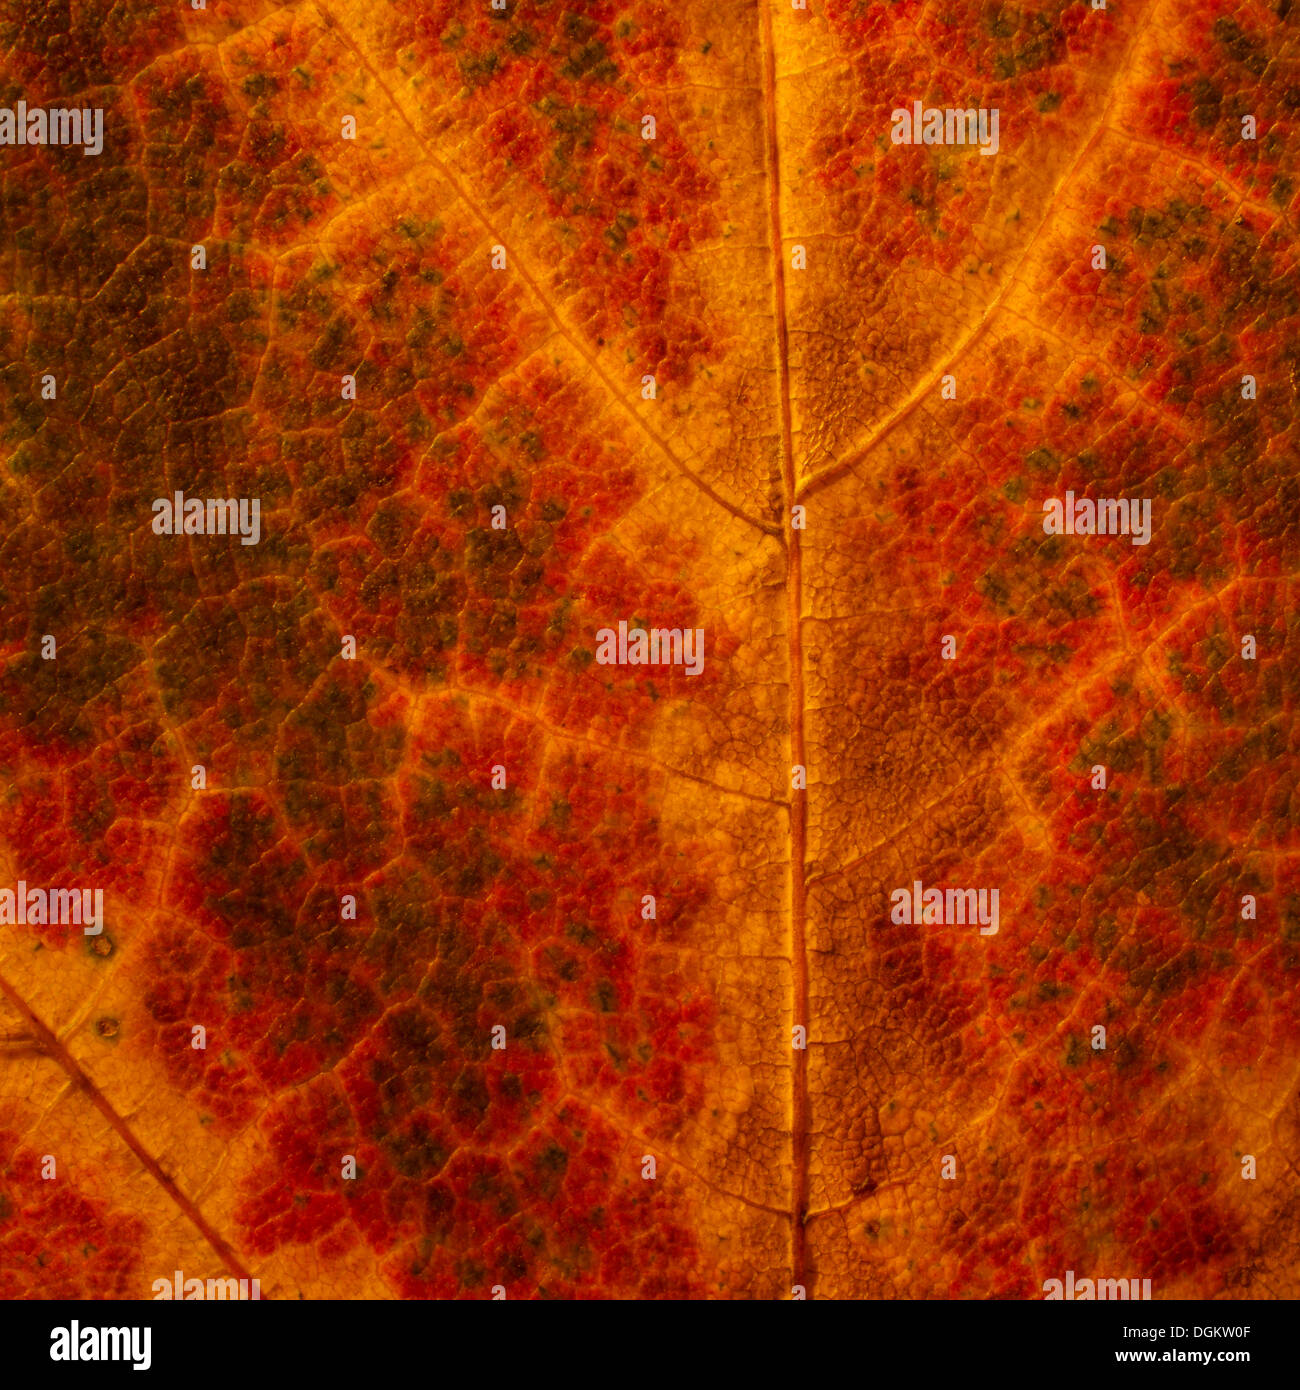 Detail view of an autumn leaf - Stock Image